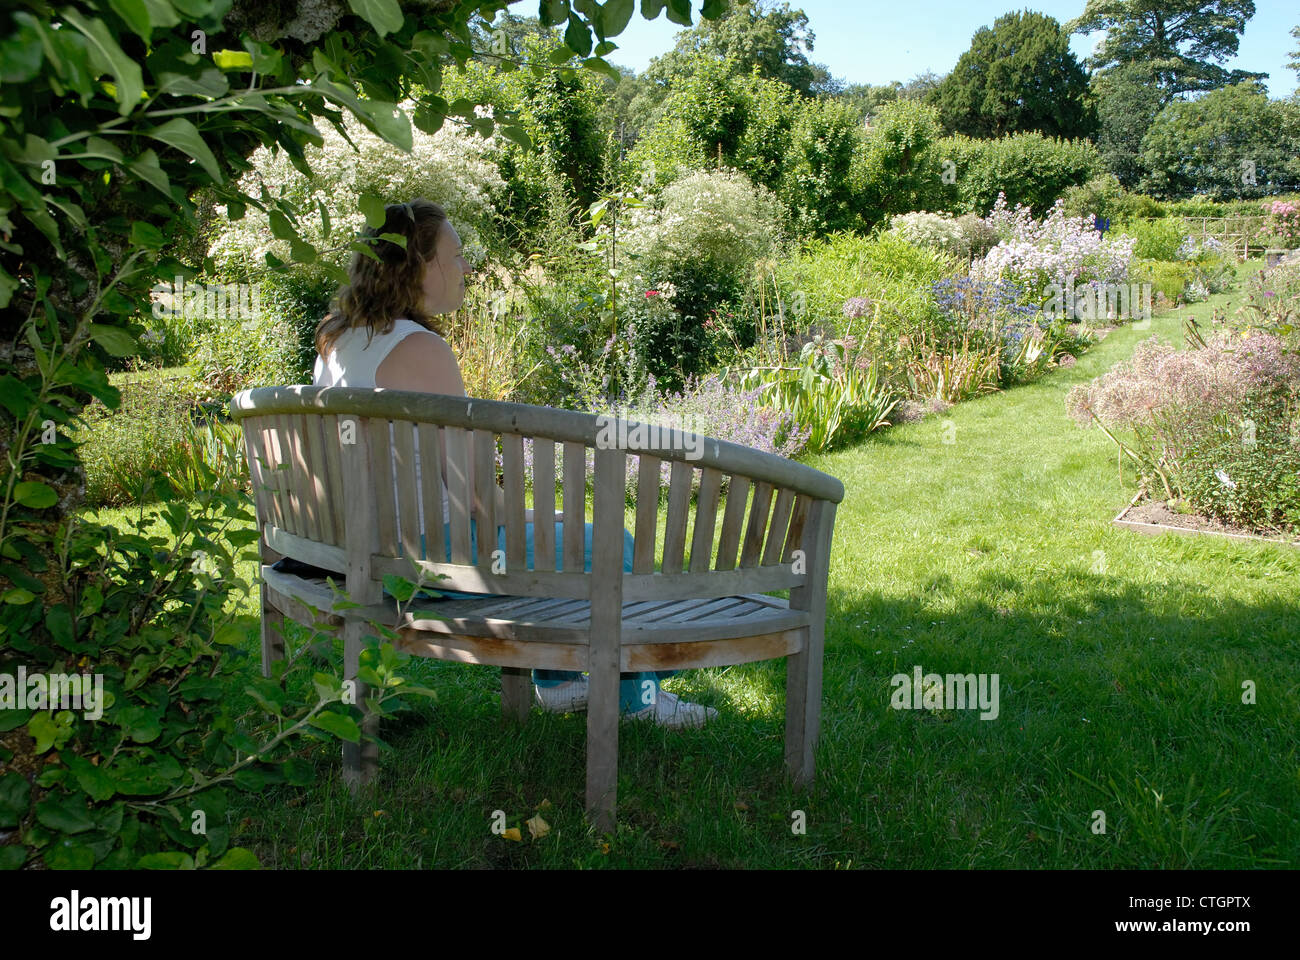 A woman relaxes in a seat at Hergest Croft Gardens, Kington, Herefordshire. - Stock Image